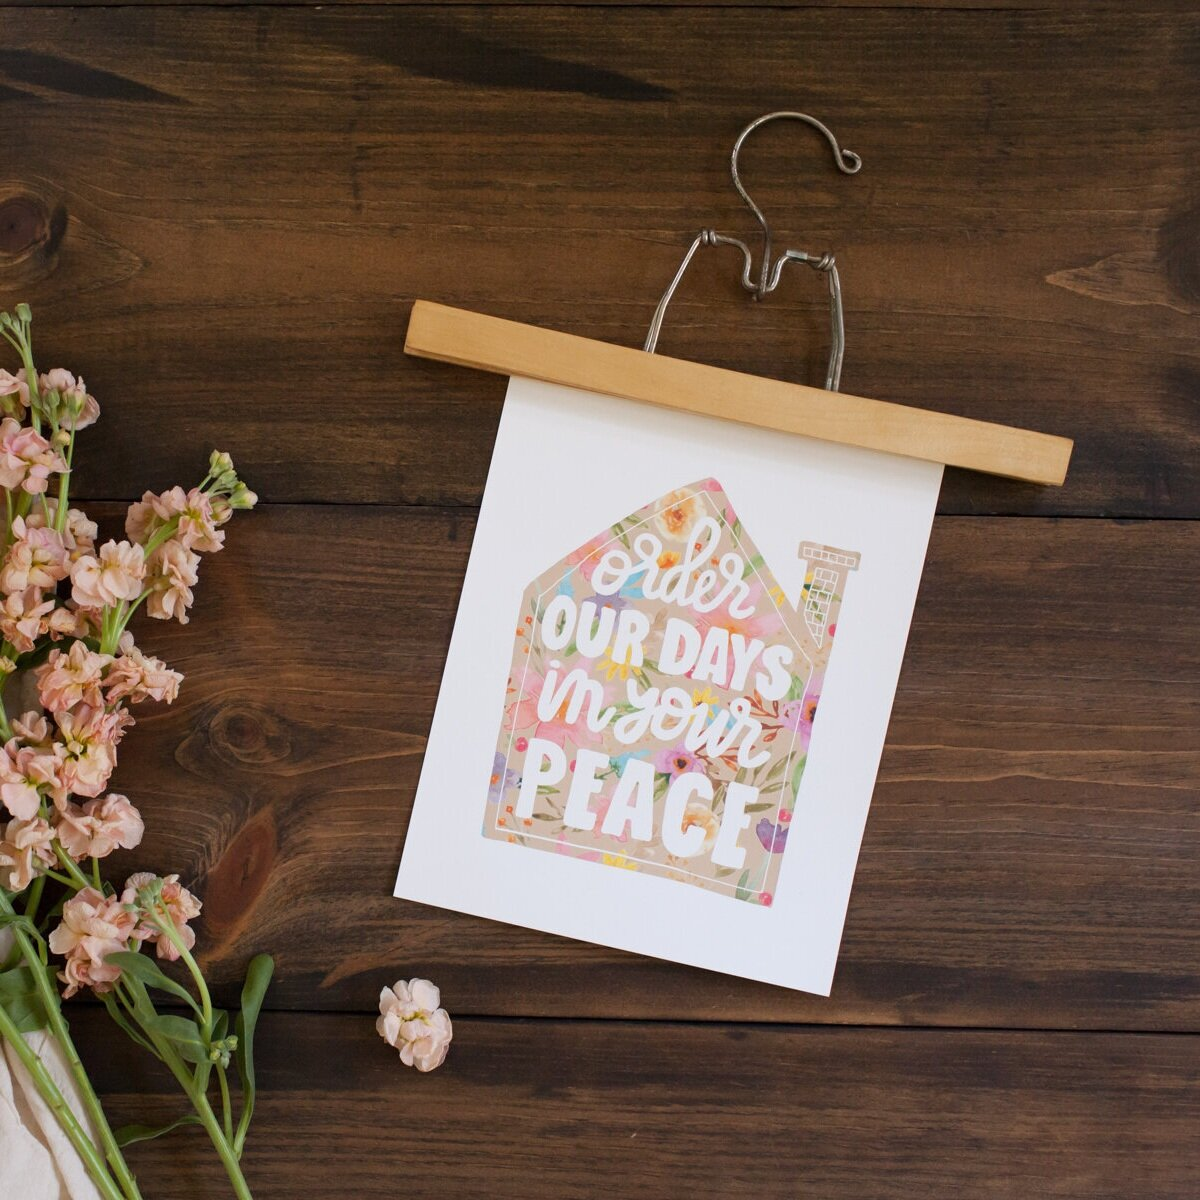 """As a new day dawns and you fall to your knees, a simple prayer echoes on your lips… """"Lord, this day belongs to you. Please, order my day in your peace.""""  """"Order Our Days In Your Peace Print"""""""